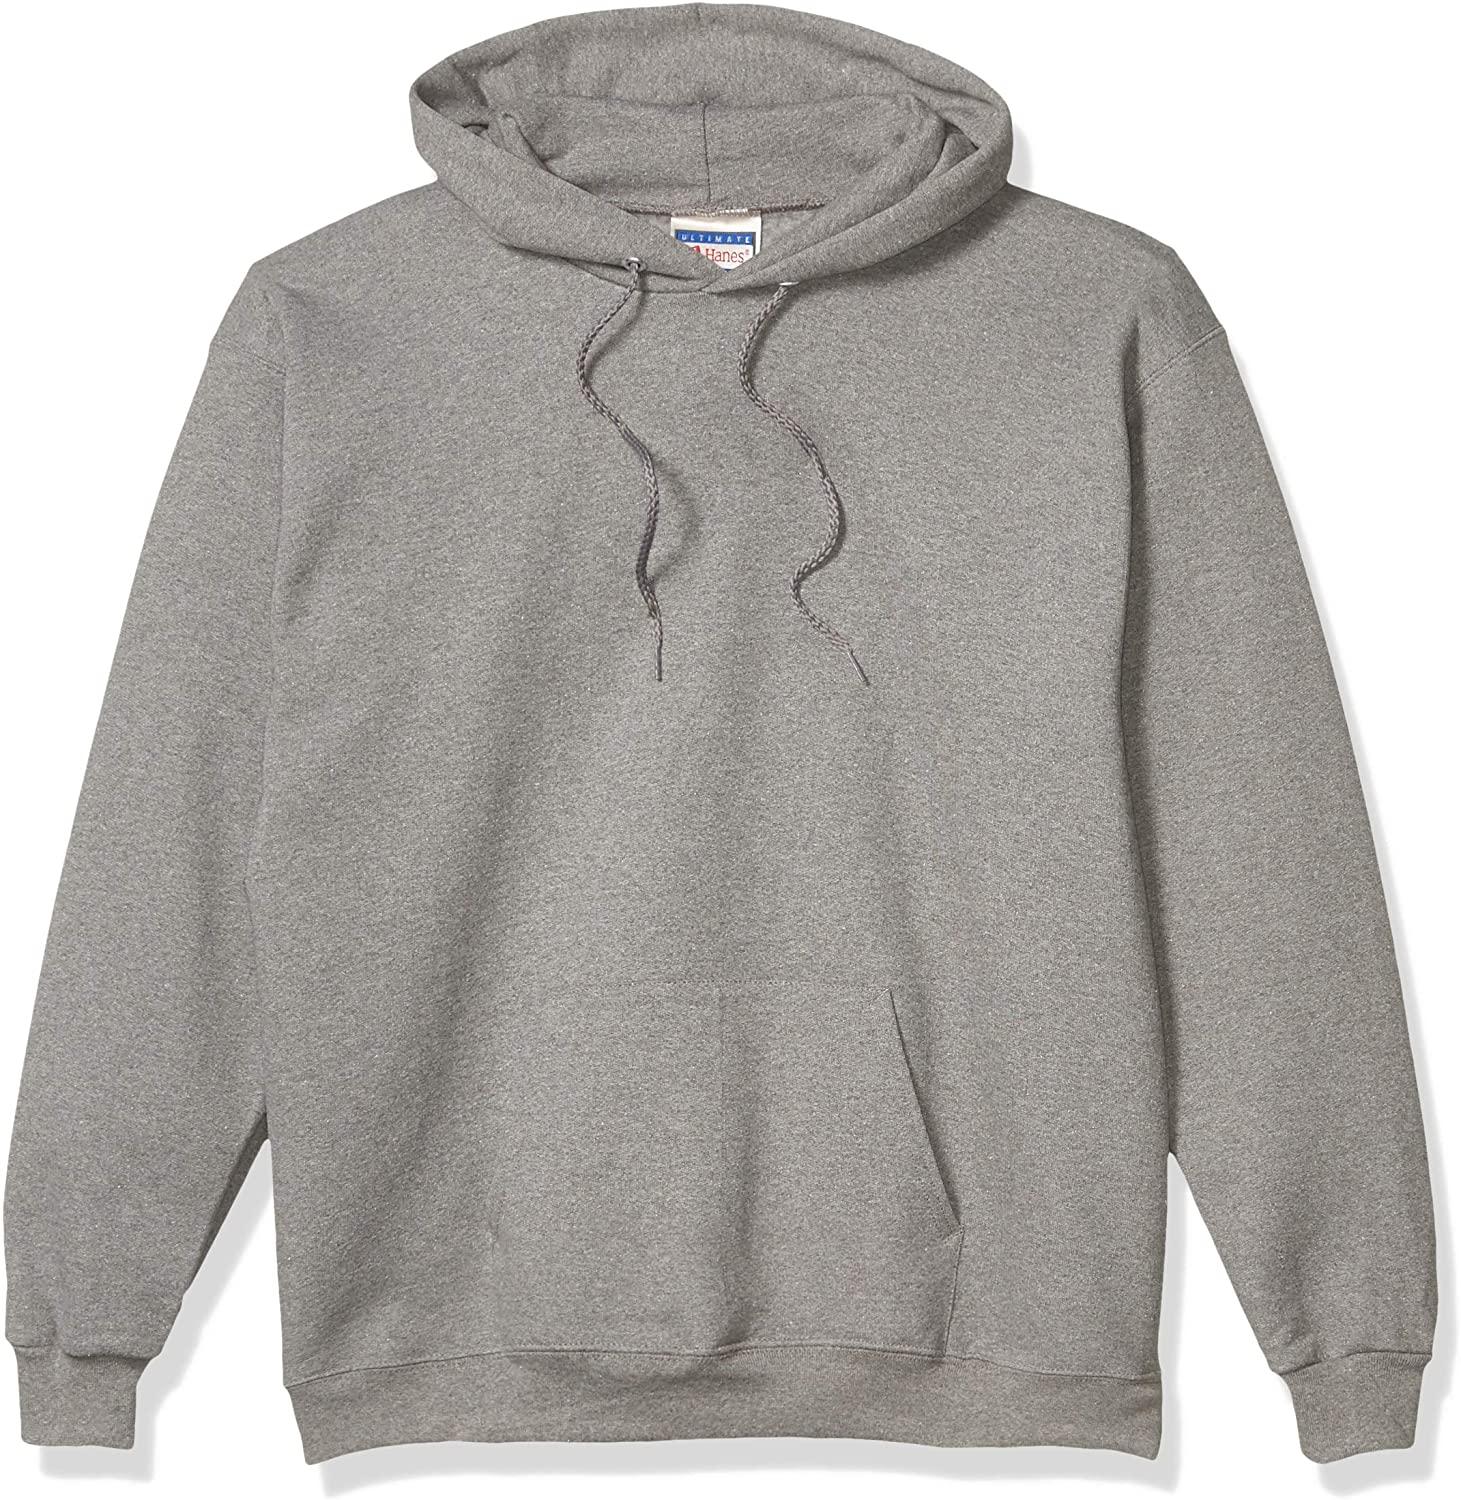 Grey Hanes Men's Cotton Heavyweight Pullover Hoodie Sweatshirt